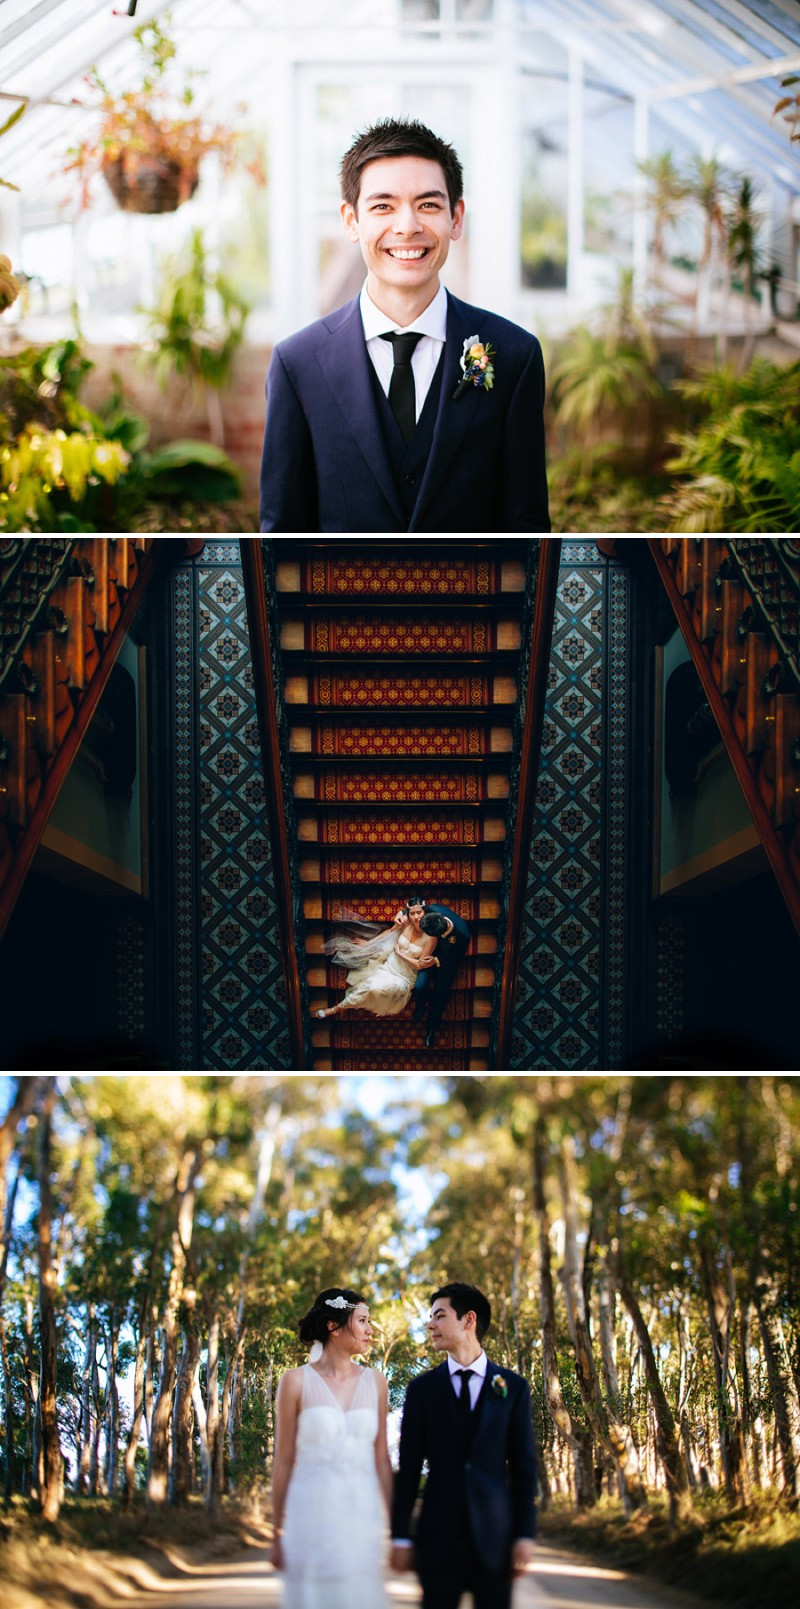 Ultra Hip And Modern Outdoor Destination Wedding In Australia With An Anna Campbell Bridal Gown And An Autumnal Bouquet With Electric Blue Bridesmaid Dresses Photographed By Lakshal Perera._0008